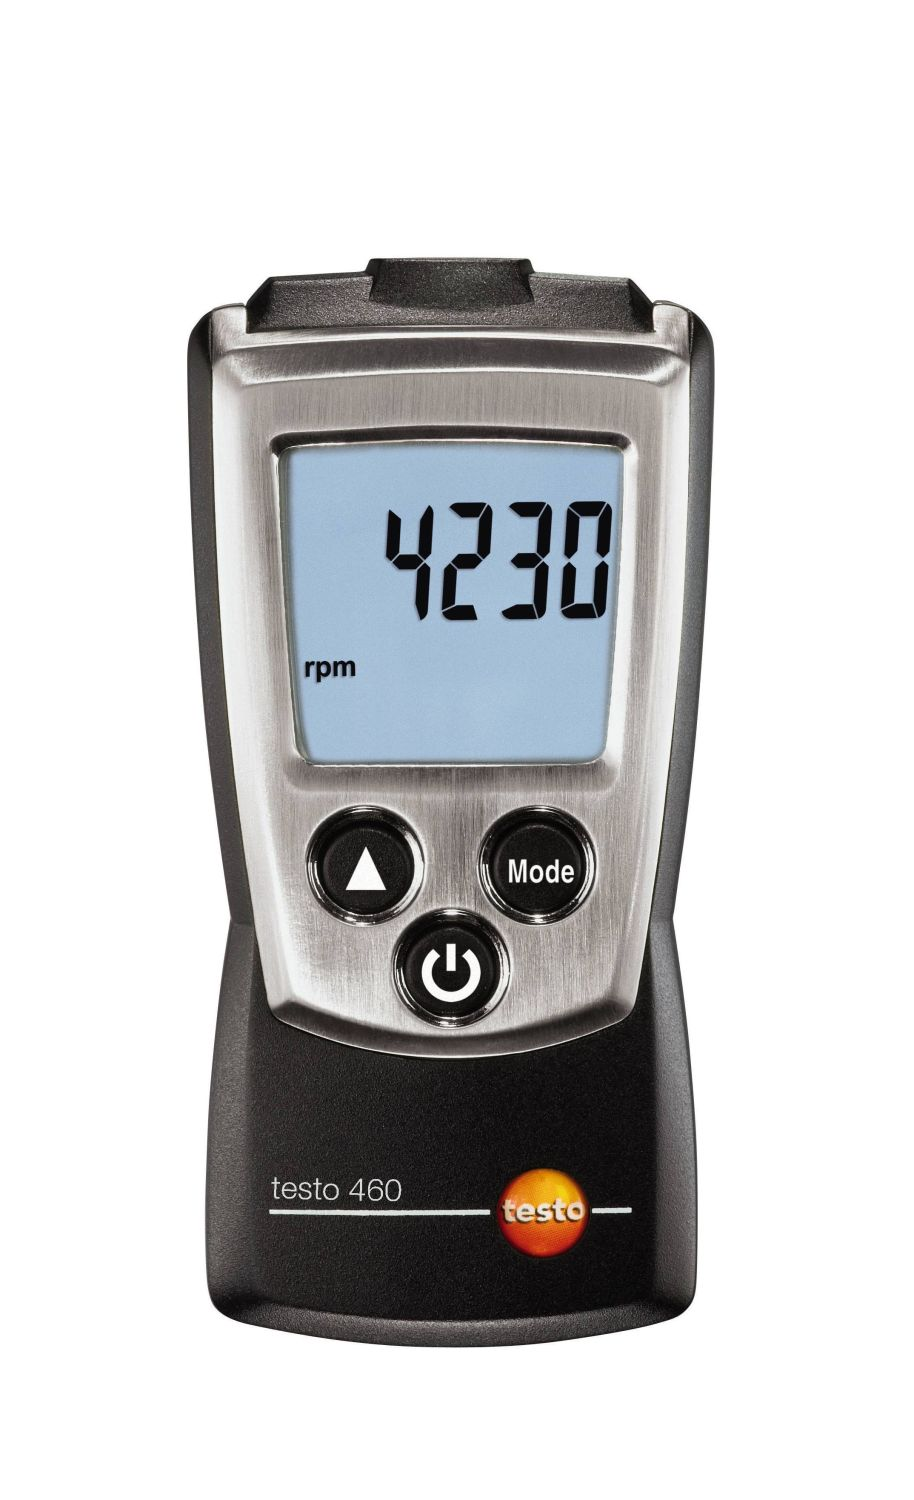 Testo 460 - Pocket-sized RPM meter